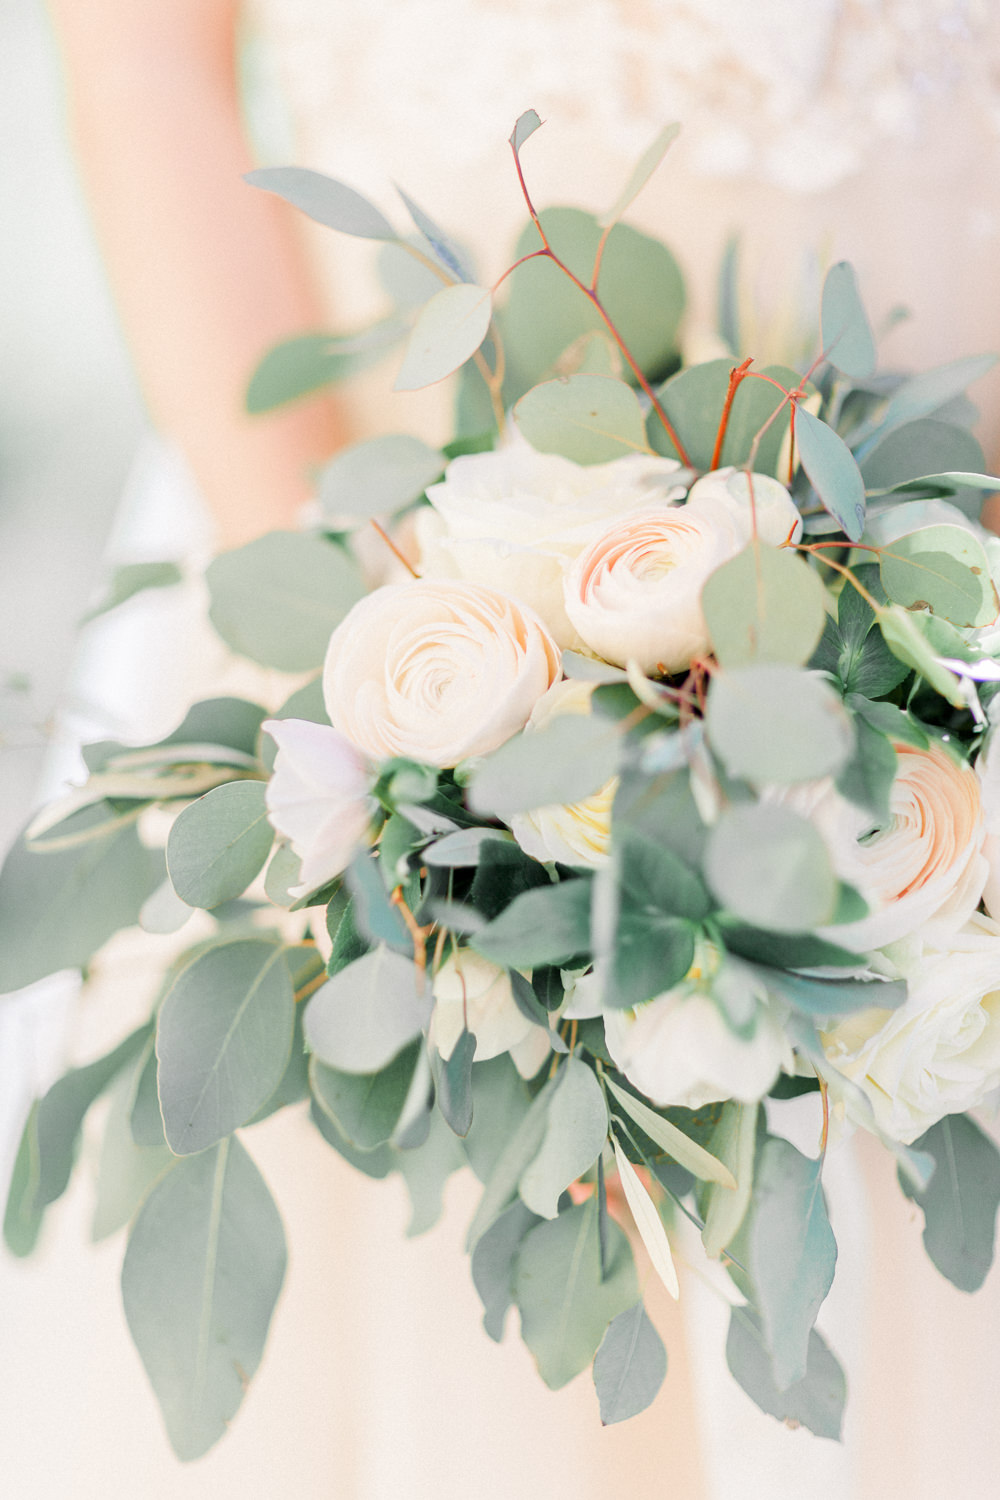 Bride Bridal Bouquet Flowers Greenery Foliage Cream Rose Ranunculus Romantic Tuscany Wedding Ideas Sonya Lalla Photography